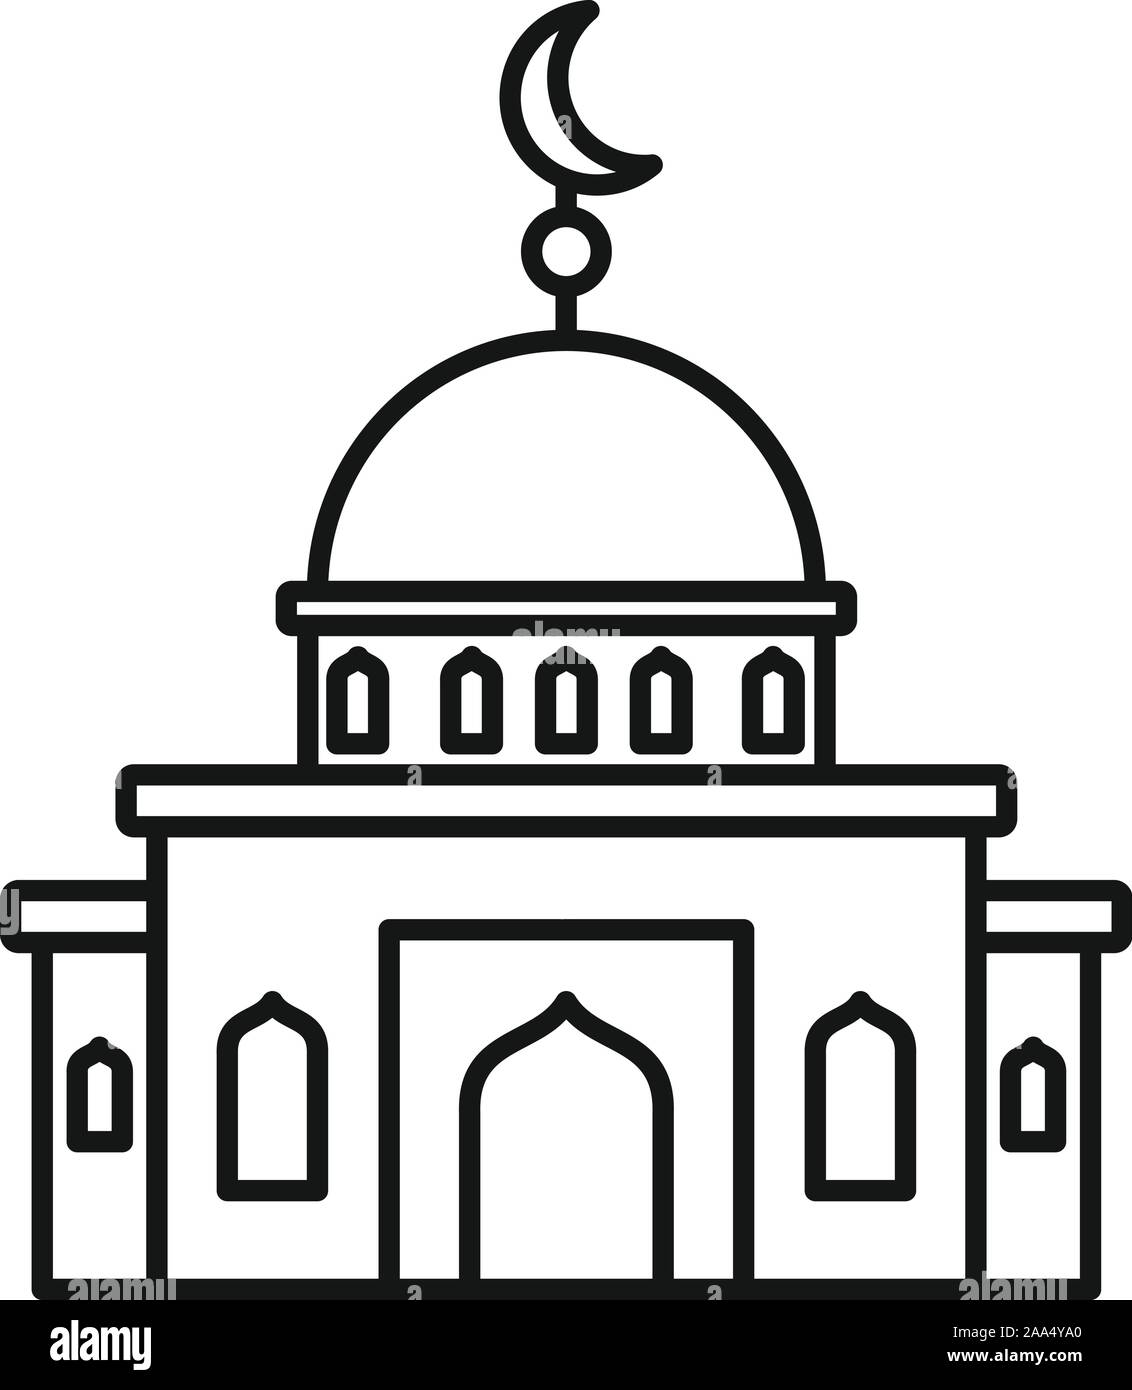 islam mosque icon outline islam mosque vector icon for web design isolated on white background stock vector image art alamy https www alamy com islam mosque icon outline islam mosque vector icon for web design isolated on white background image333252808 html